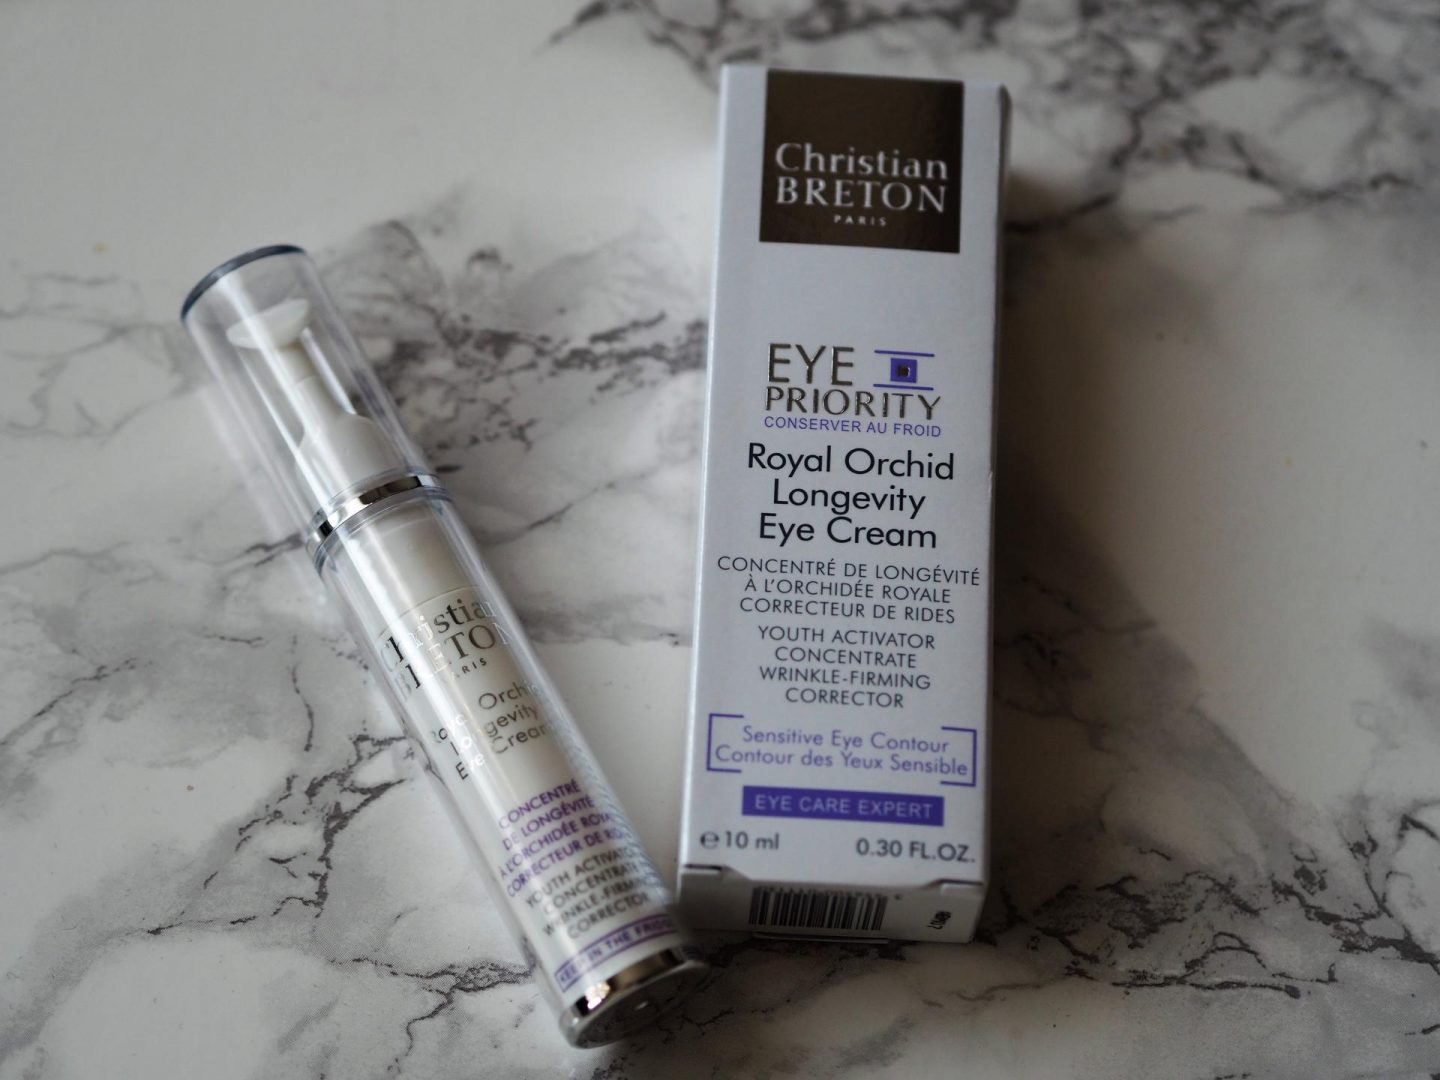 Around The World Beauty - Product: Christian Breton Paris Eye Priority Royal Orchid Longevity Eye Cream